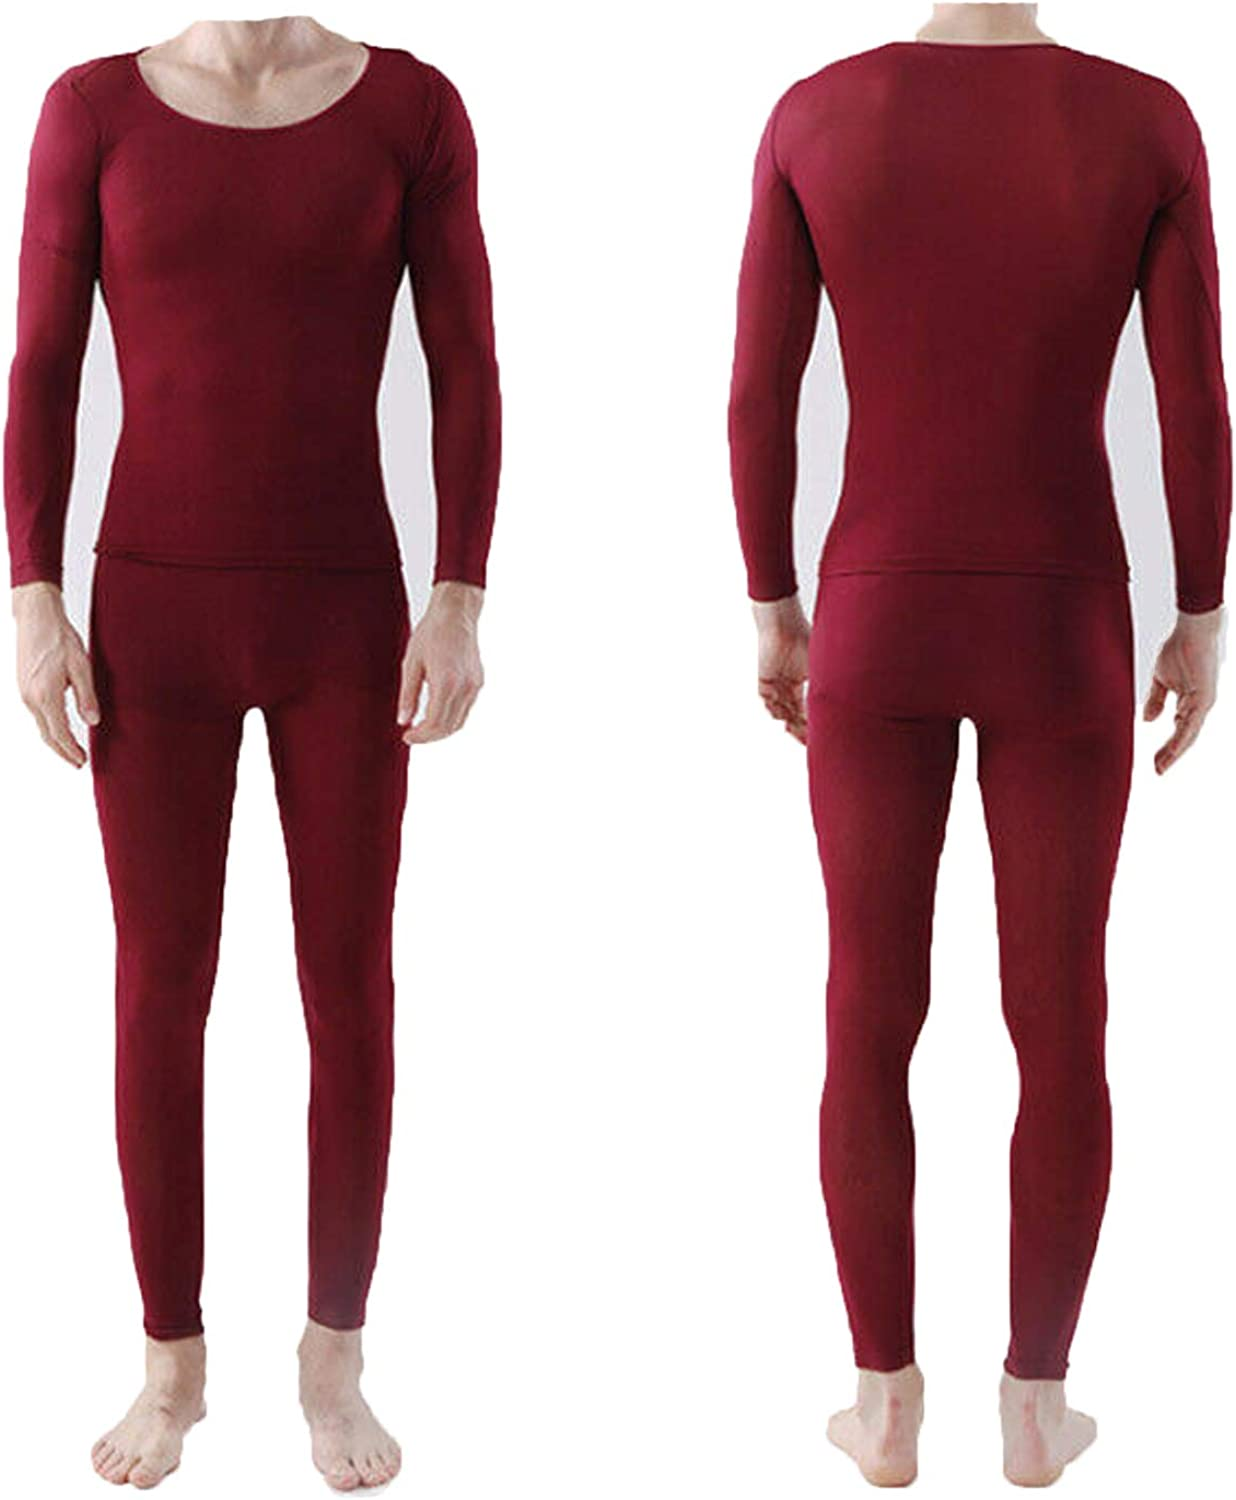 hengyuany 37 Degree Constant Temperature self-Heating Couple Thermal Underwear Cover Slim fit Thin ThermalInnerwear (Men's red)